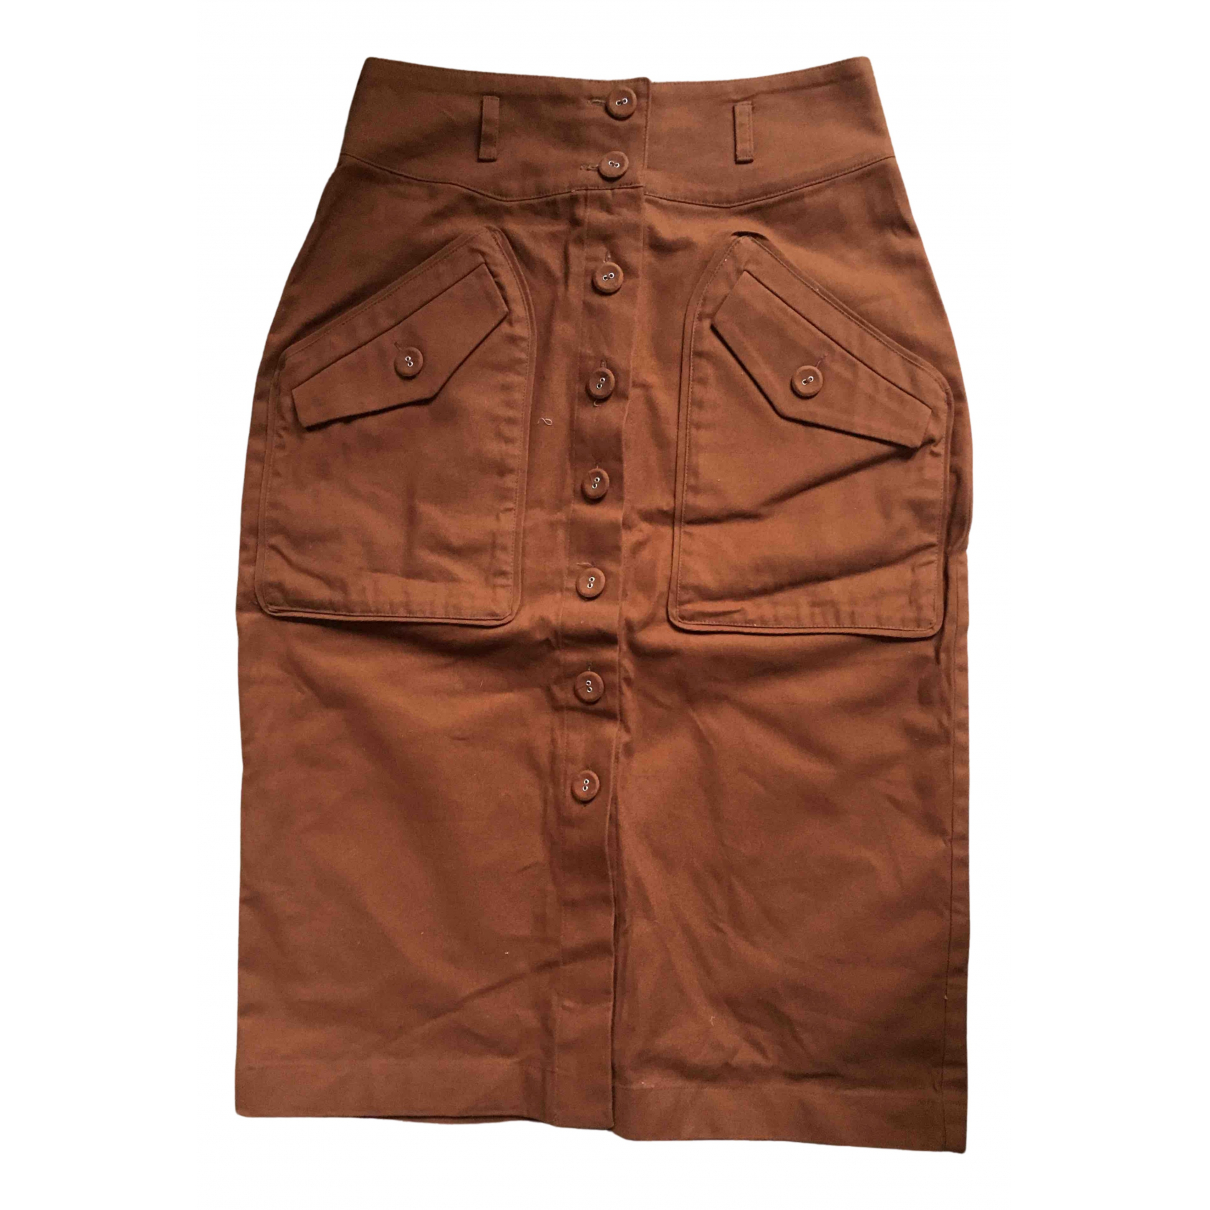 Valentine Gauthier N Brown Cotton skirt for Women 38 FR